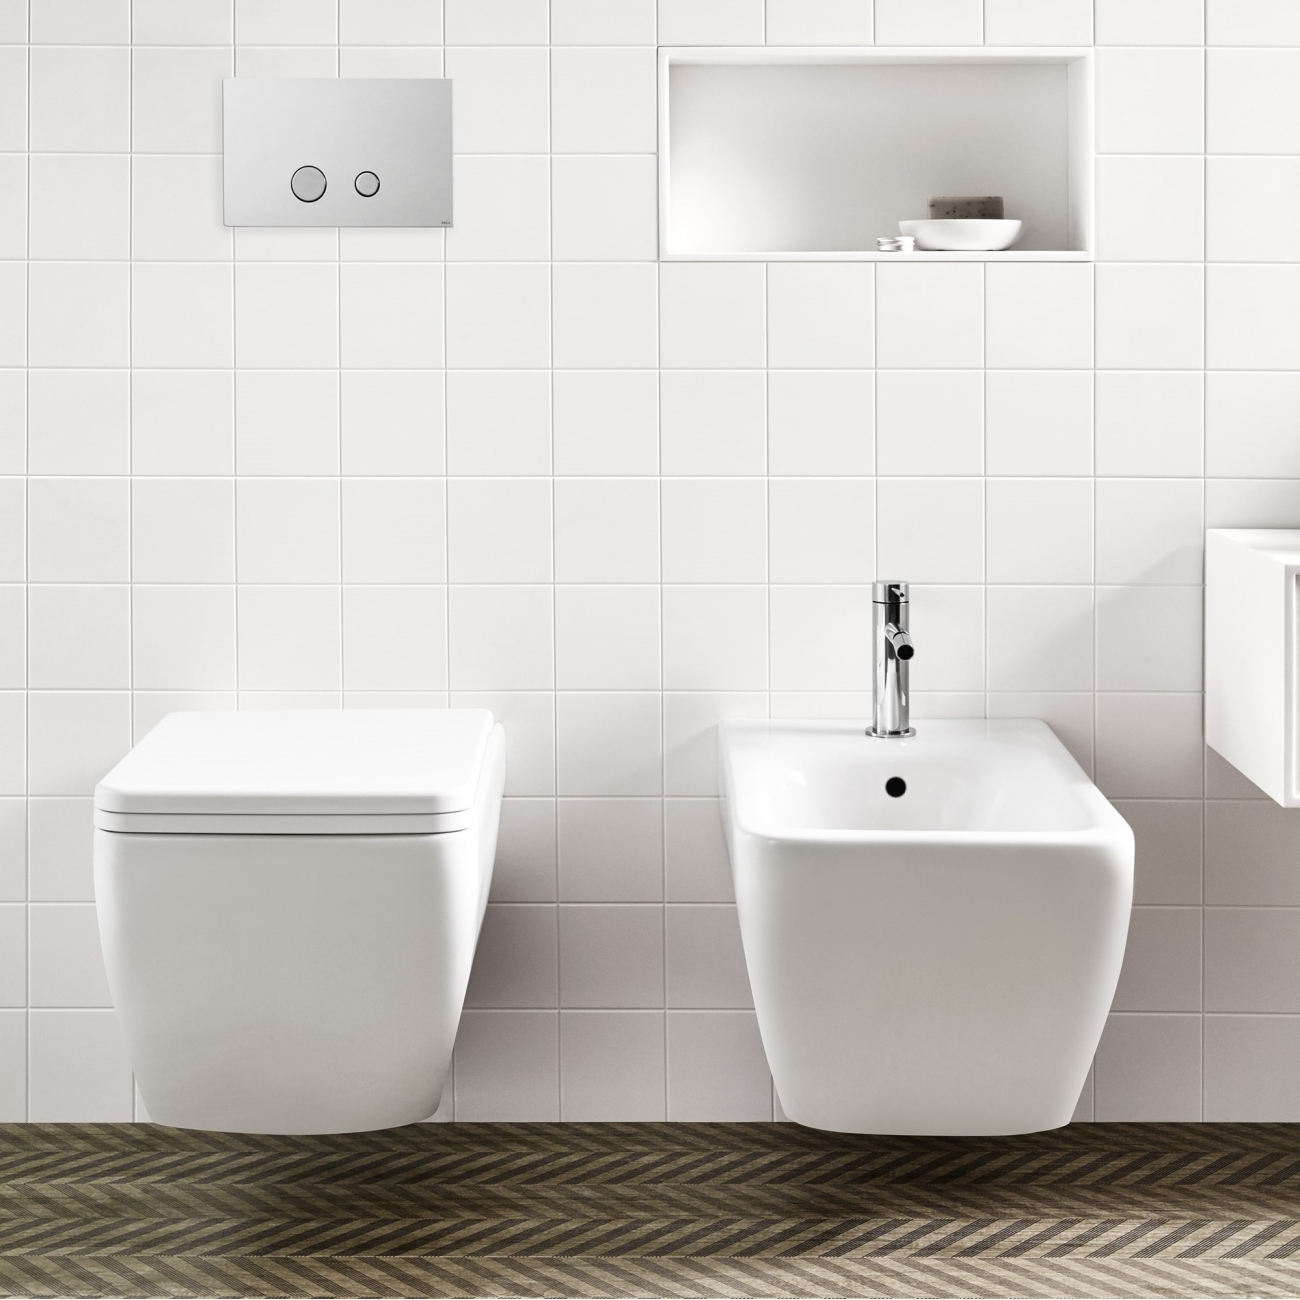 Muretto Per Sanitari Sospesi rexa design maybe.2 wc sospeso - tattahome